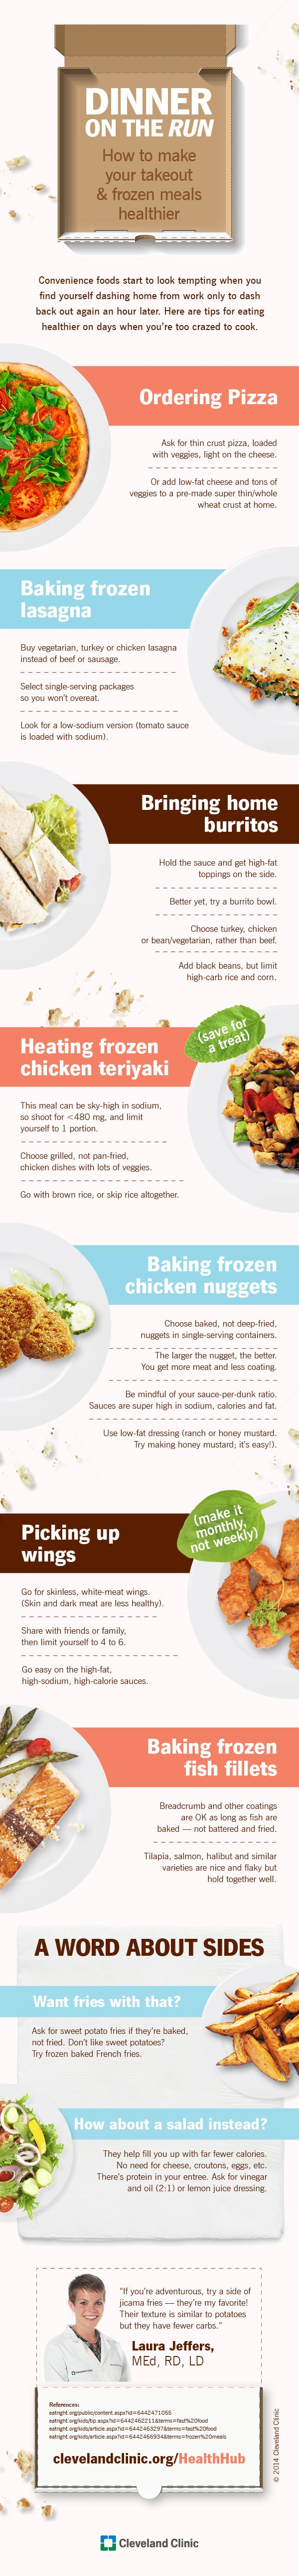 Make Your Takeout & Frozen Meals Healthier